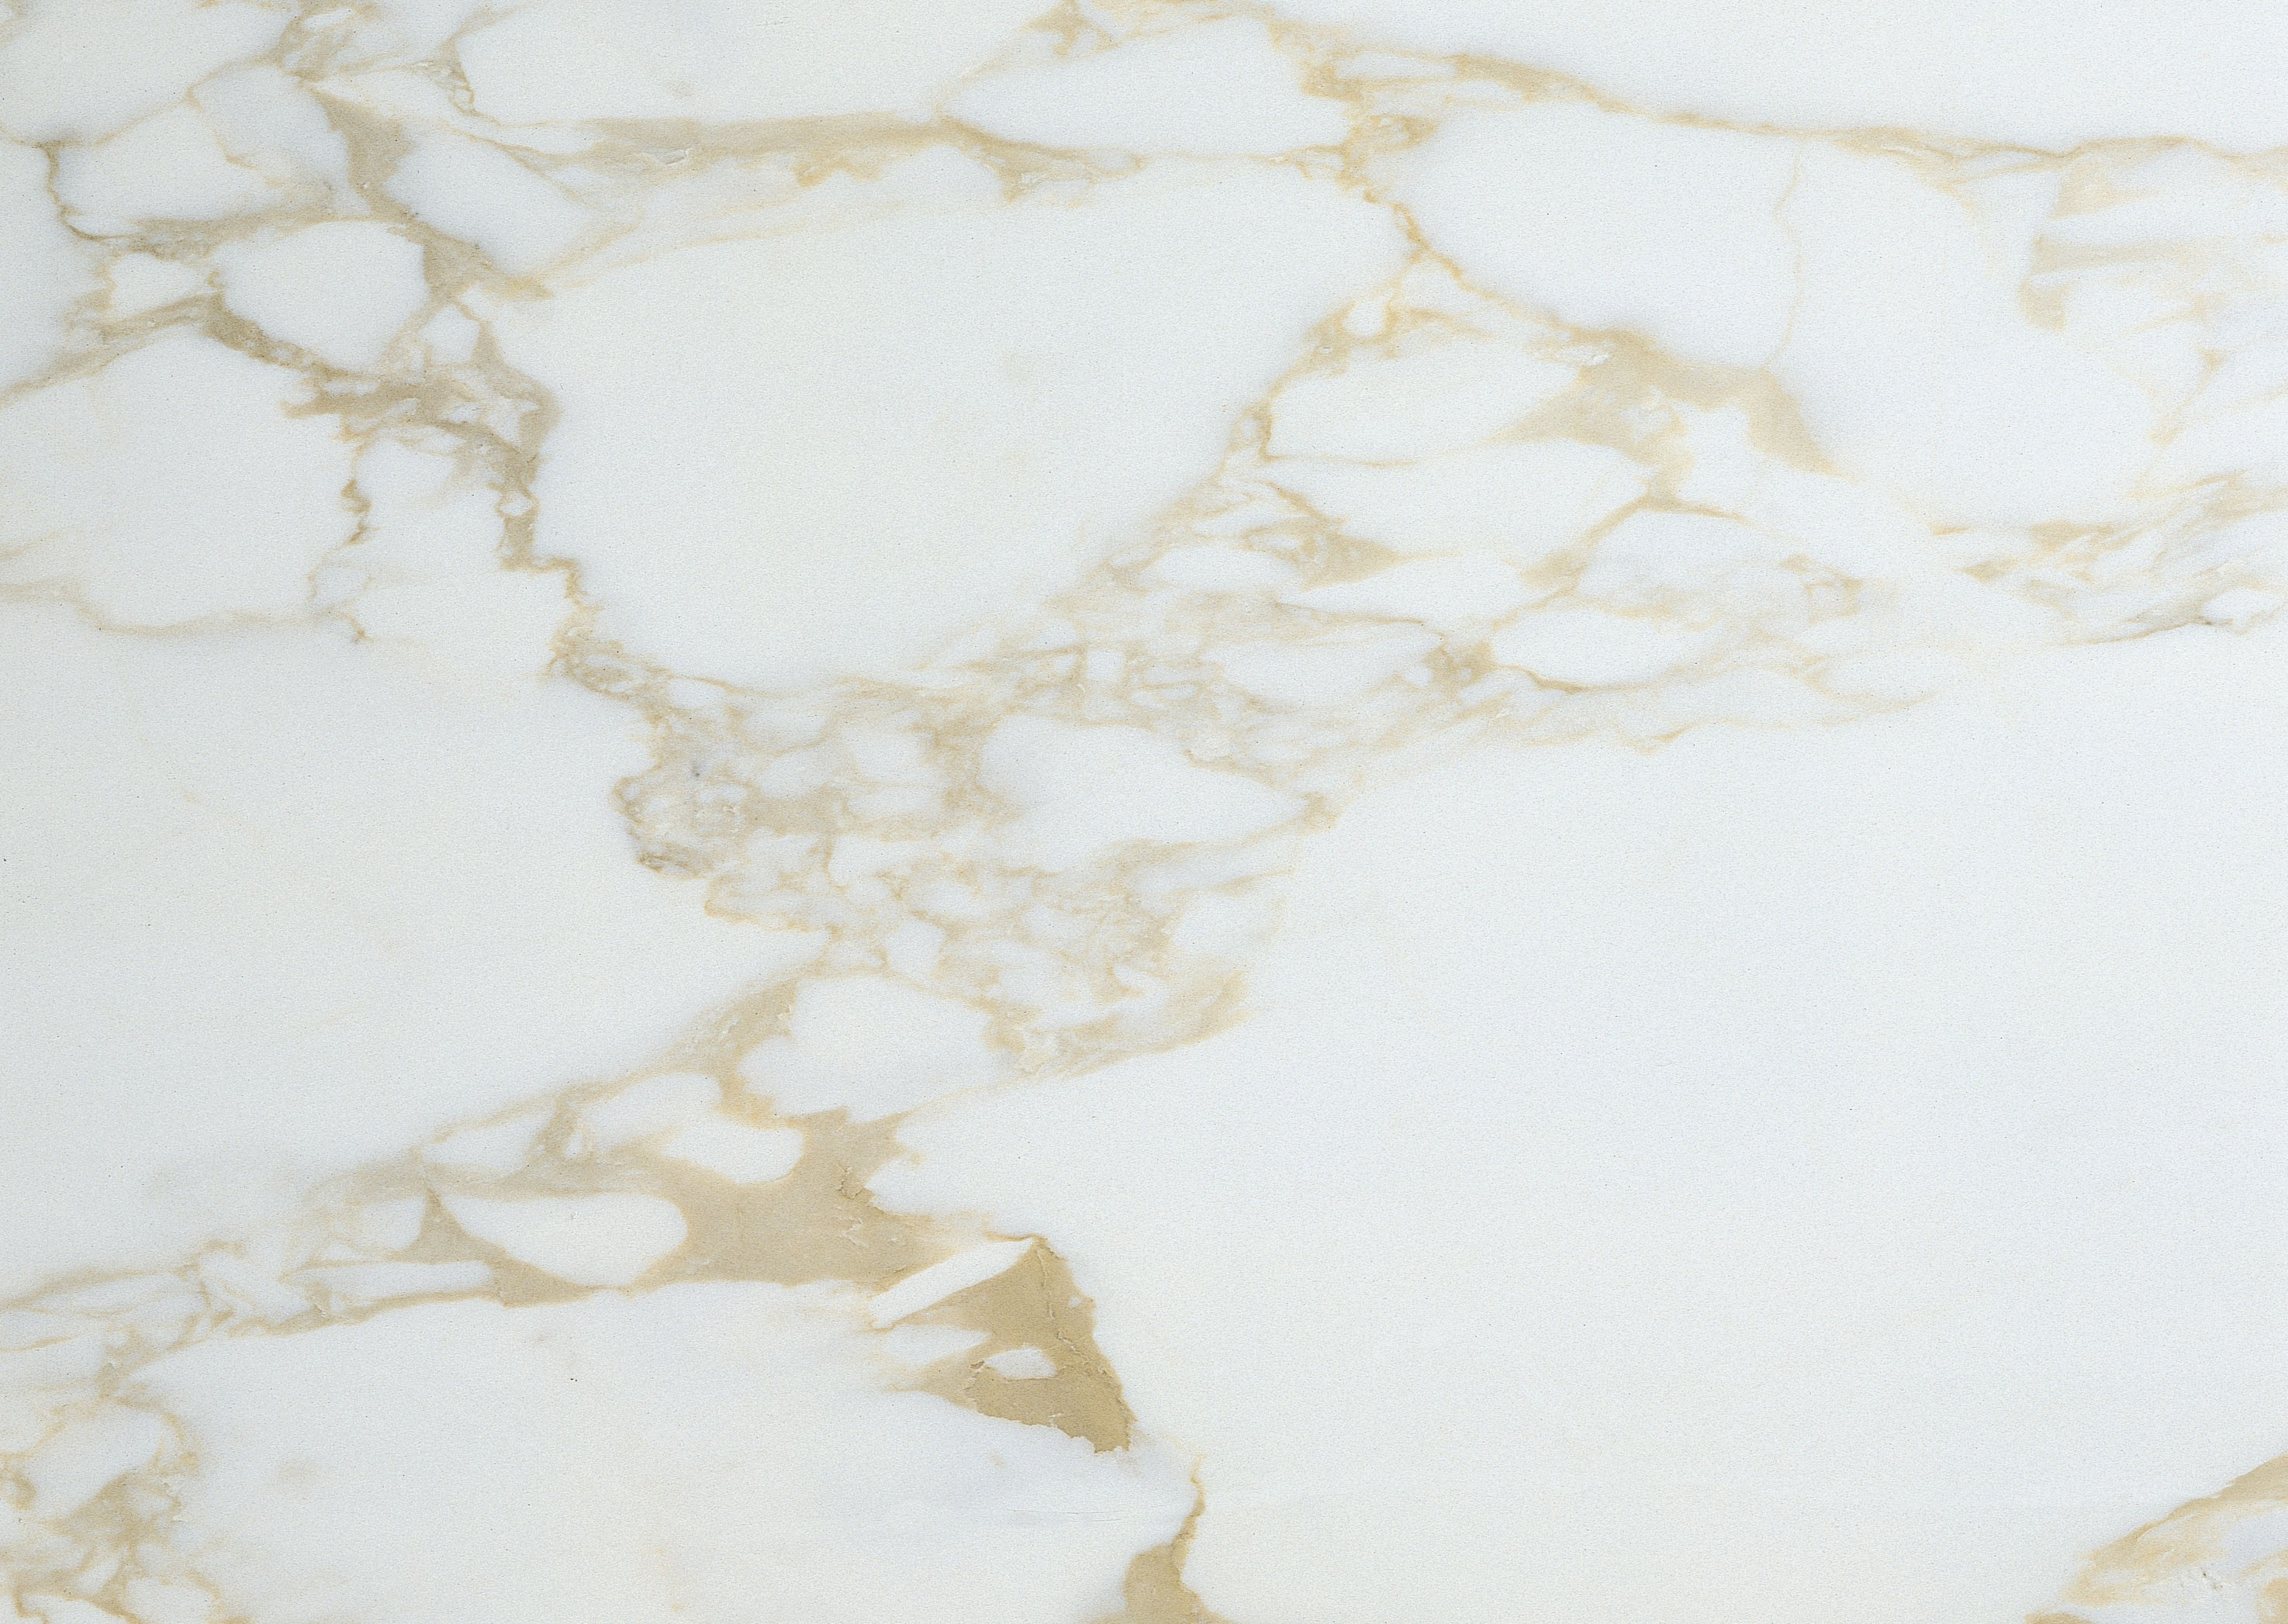 Marble Bathroom Designs Marble Background 183 ① Download Free Beautiful Hd